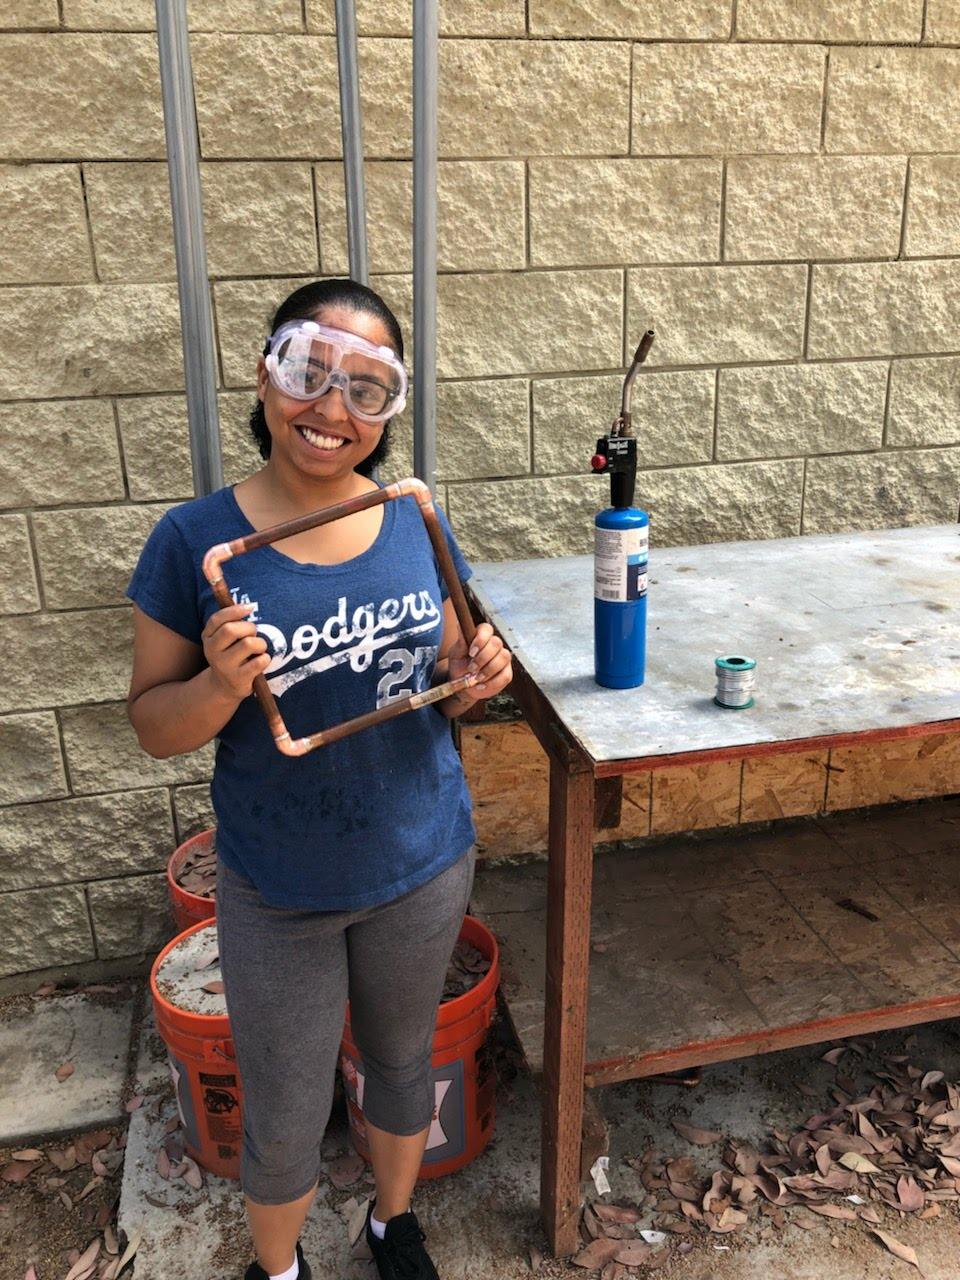 A New career and A brighter future - Second Chance youth graduate Kathyleen learned a new skill and has put it to use as a welder.